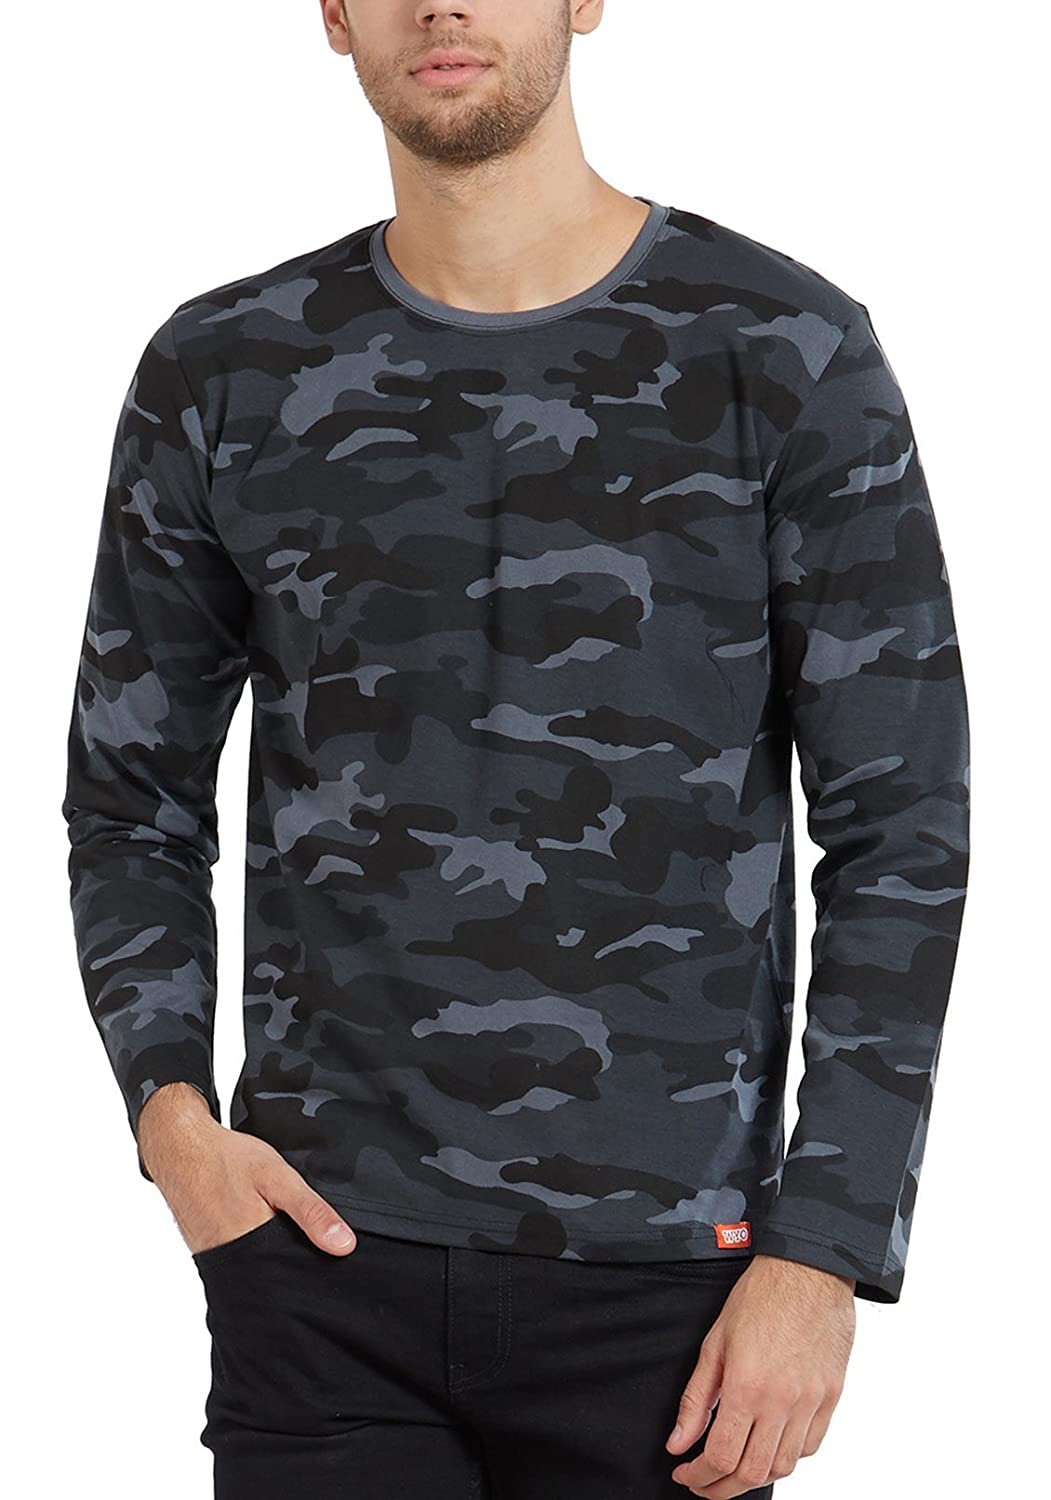 Wyo Wear Your Opinion Cotton T Shirt For Men Camoflauge Print Round